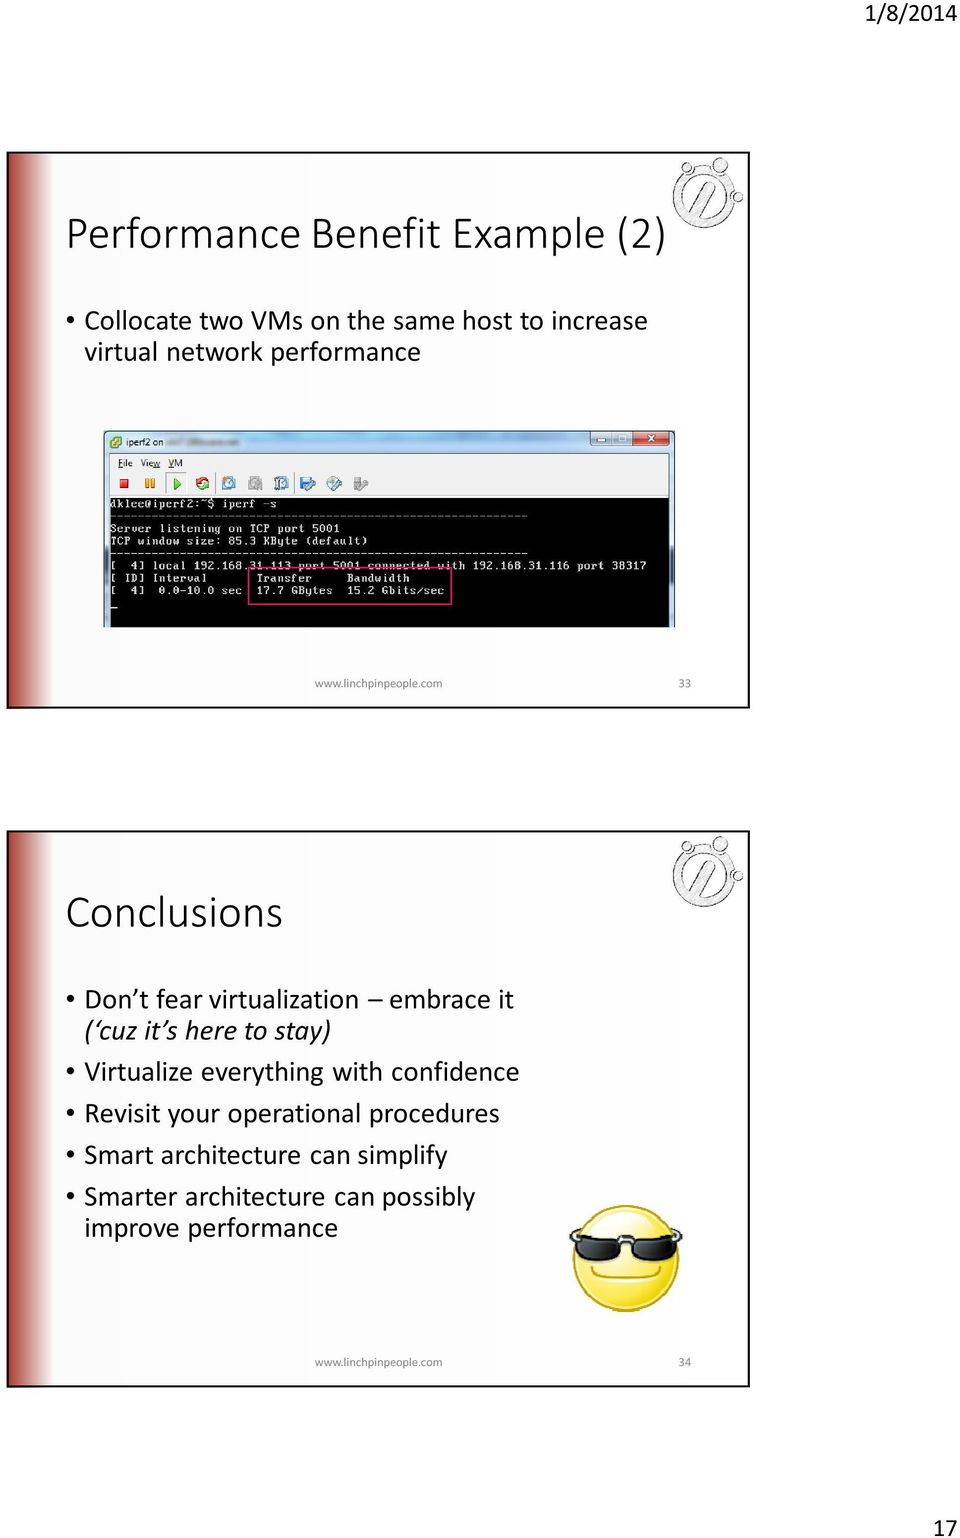 com 33 Conclusions Don t fear virtualization embrace it ( cuzit s here to stay) Virtualize